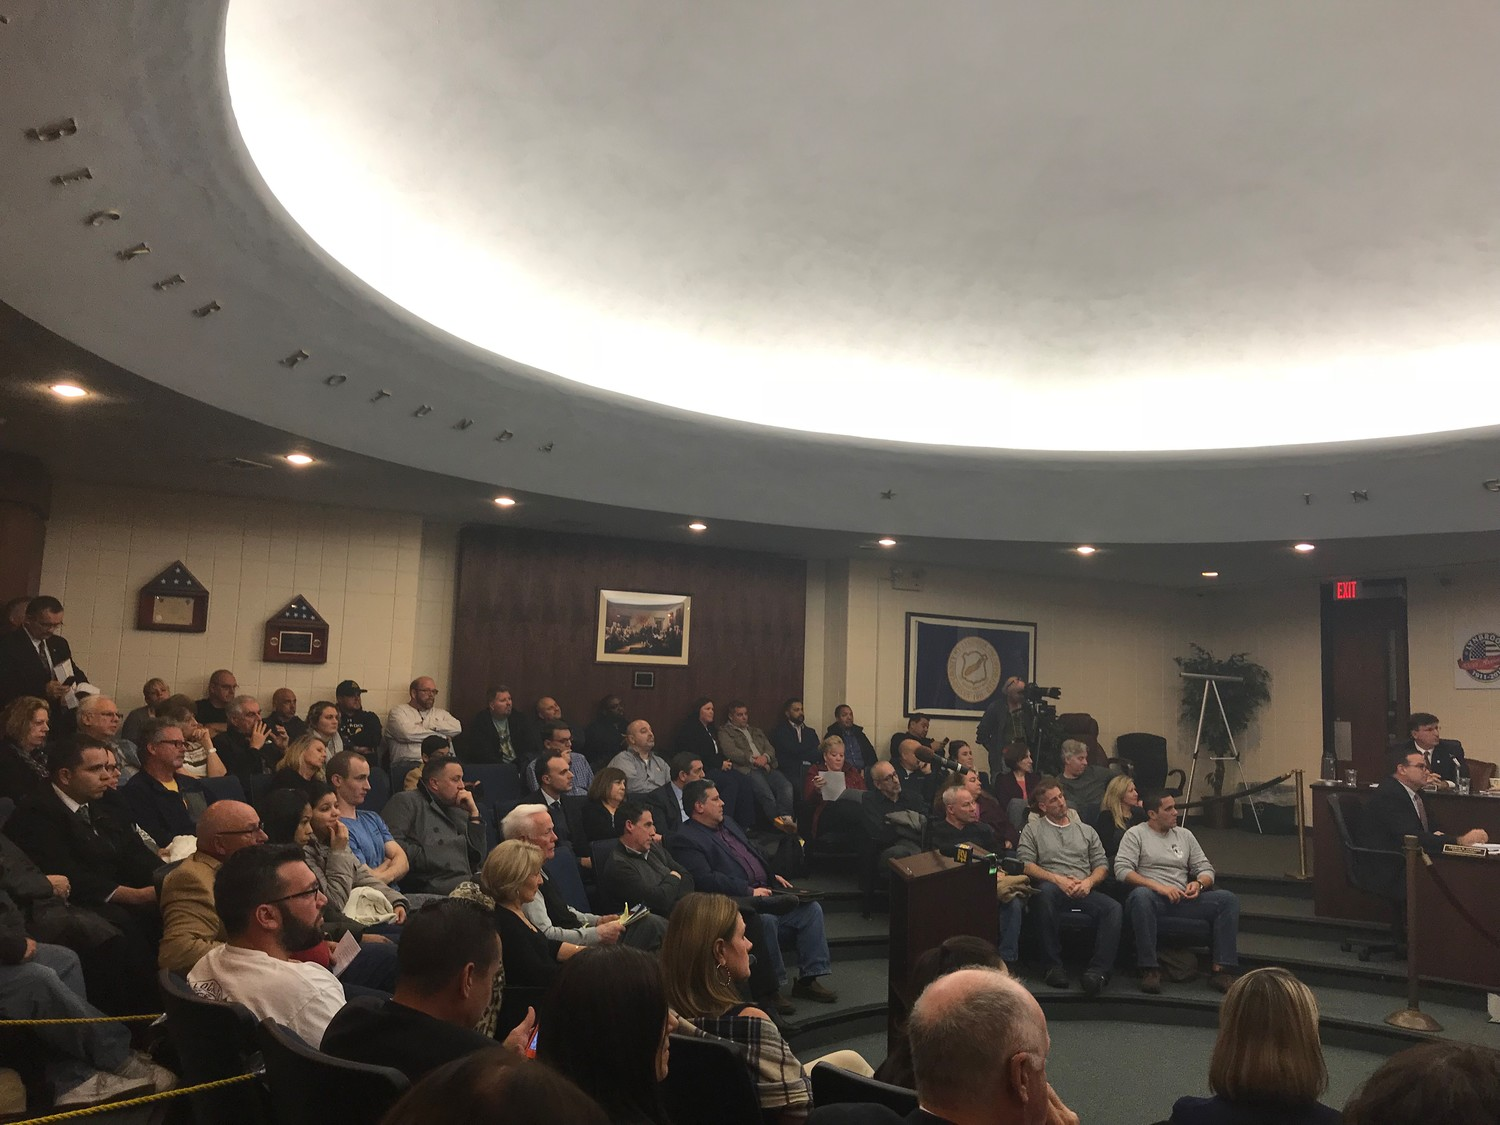 Dozens of residents came to Village Hall on Monday night, even though a public hearing about the project had been canceled days earlier.